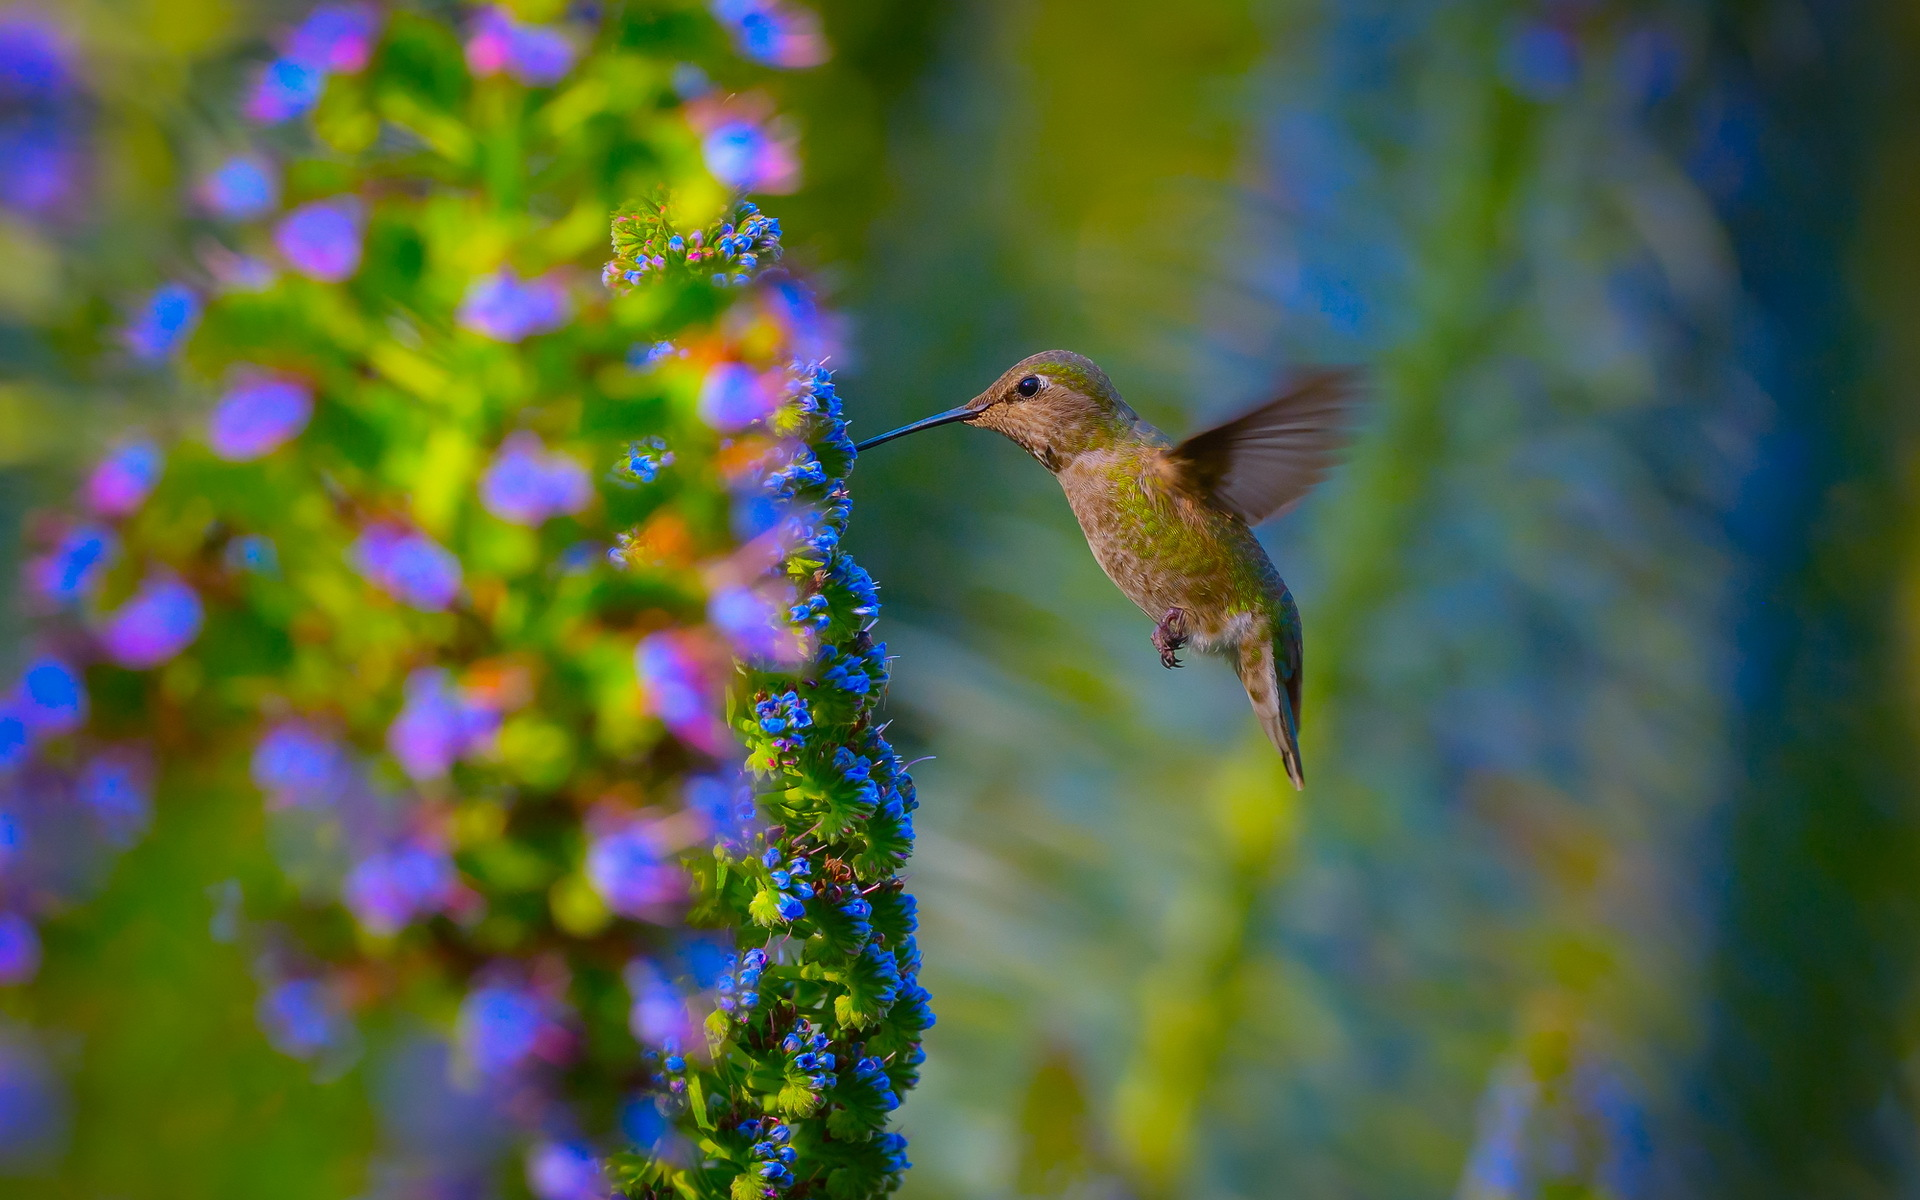 Hummingbird-Garden-Nature-Bird